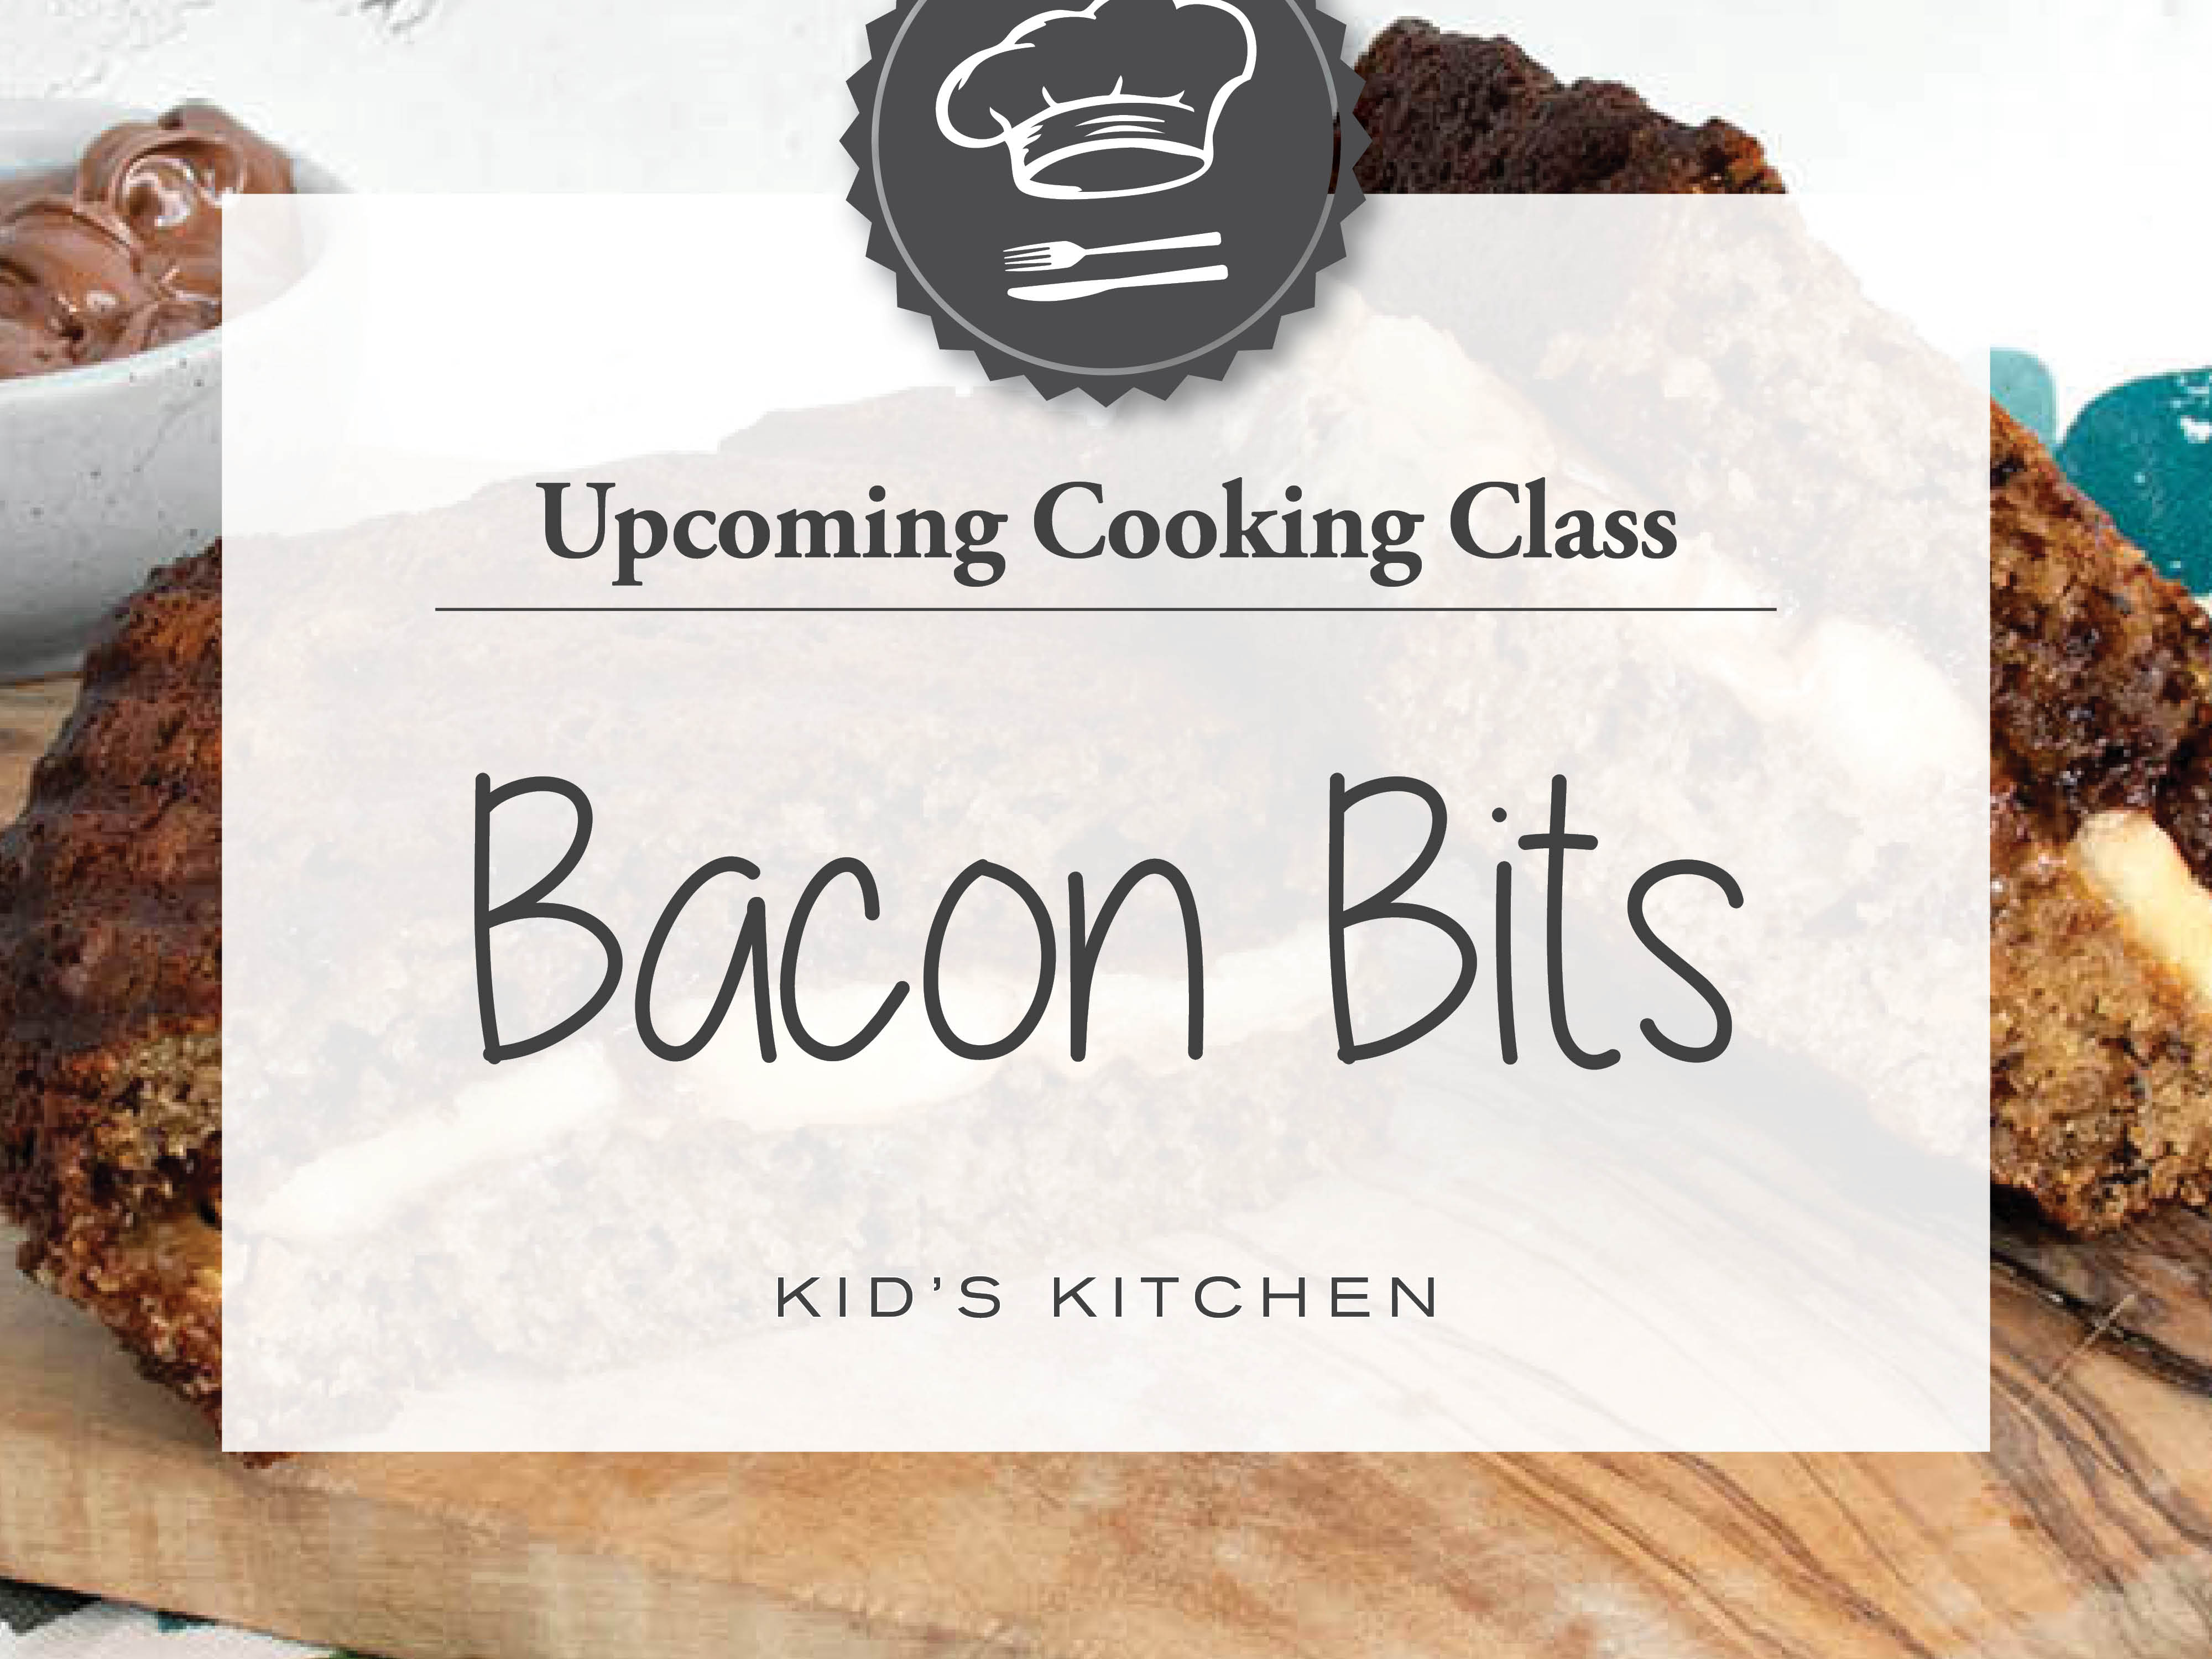 Bacon Bits Cooking Class